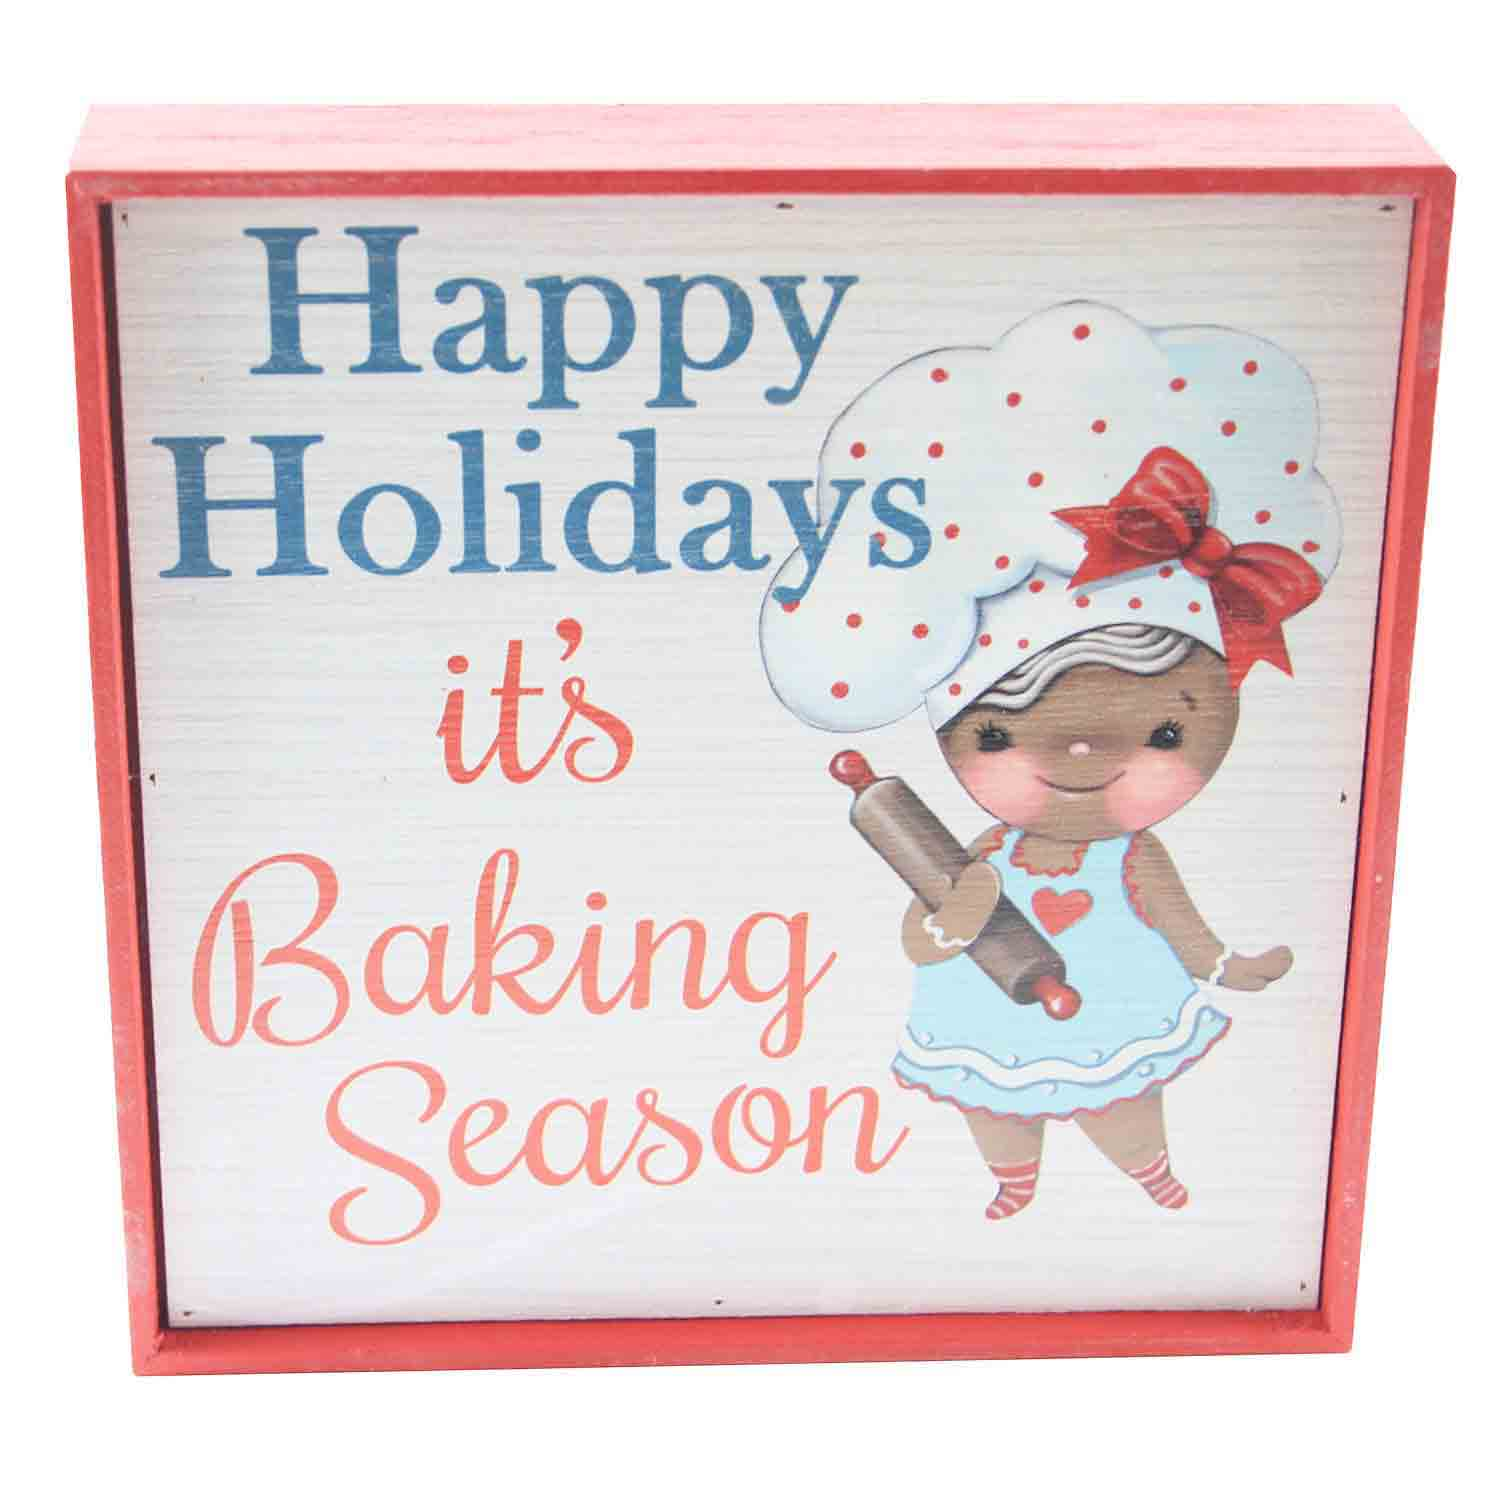 It's Baking Season Box Sign